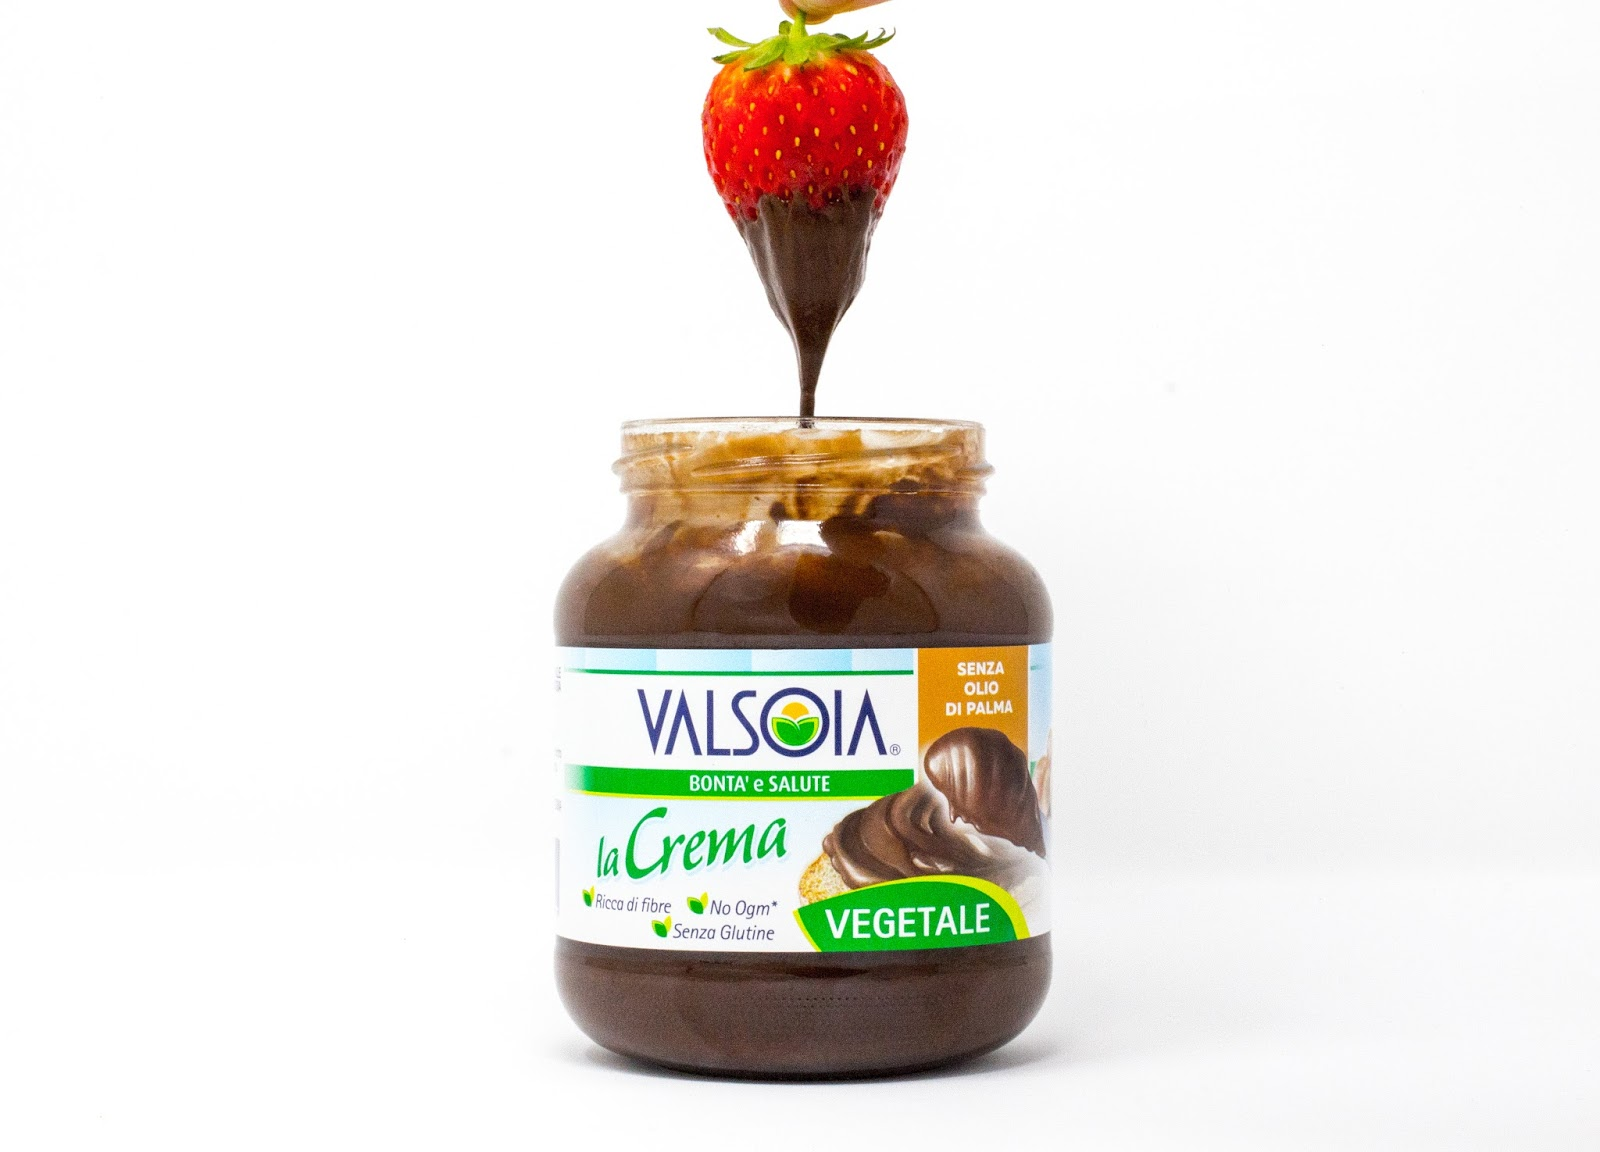 A jar of Valsoia Dairy Free Italian Chocolate Spread with a strawberry being dipped in it